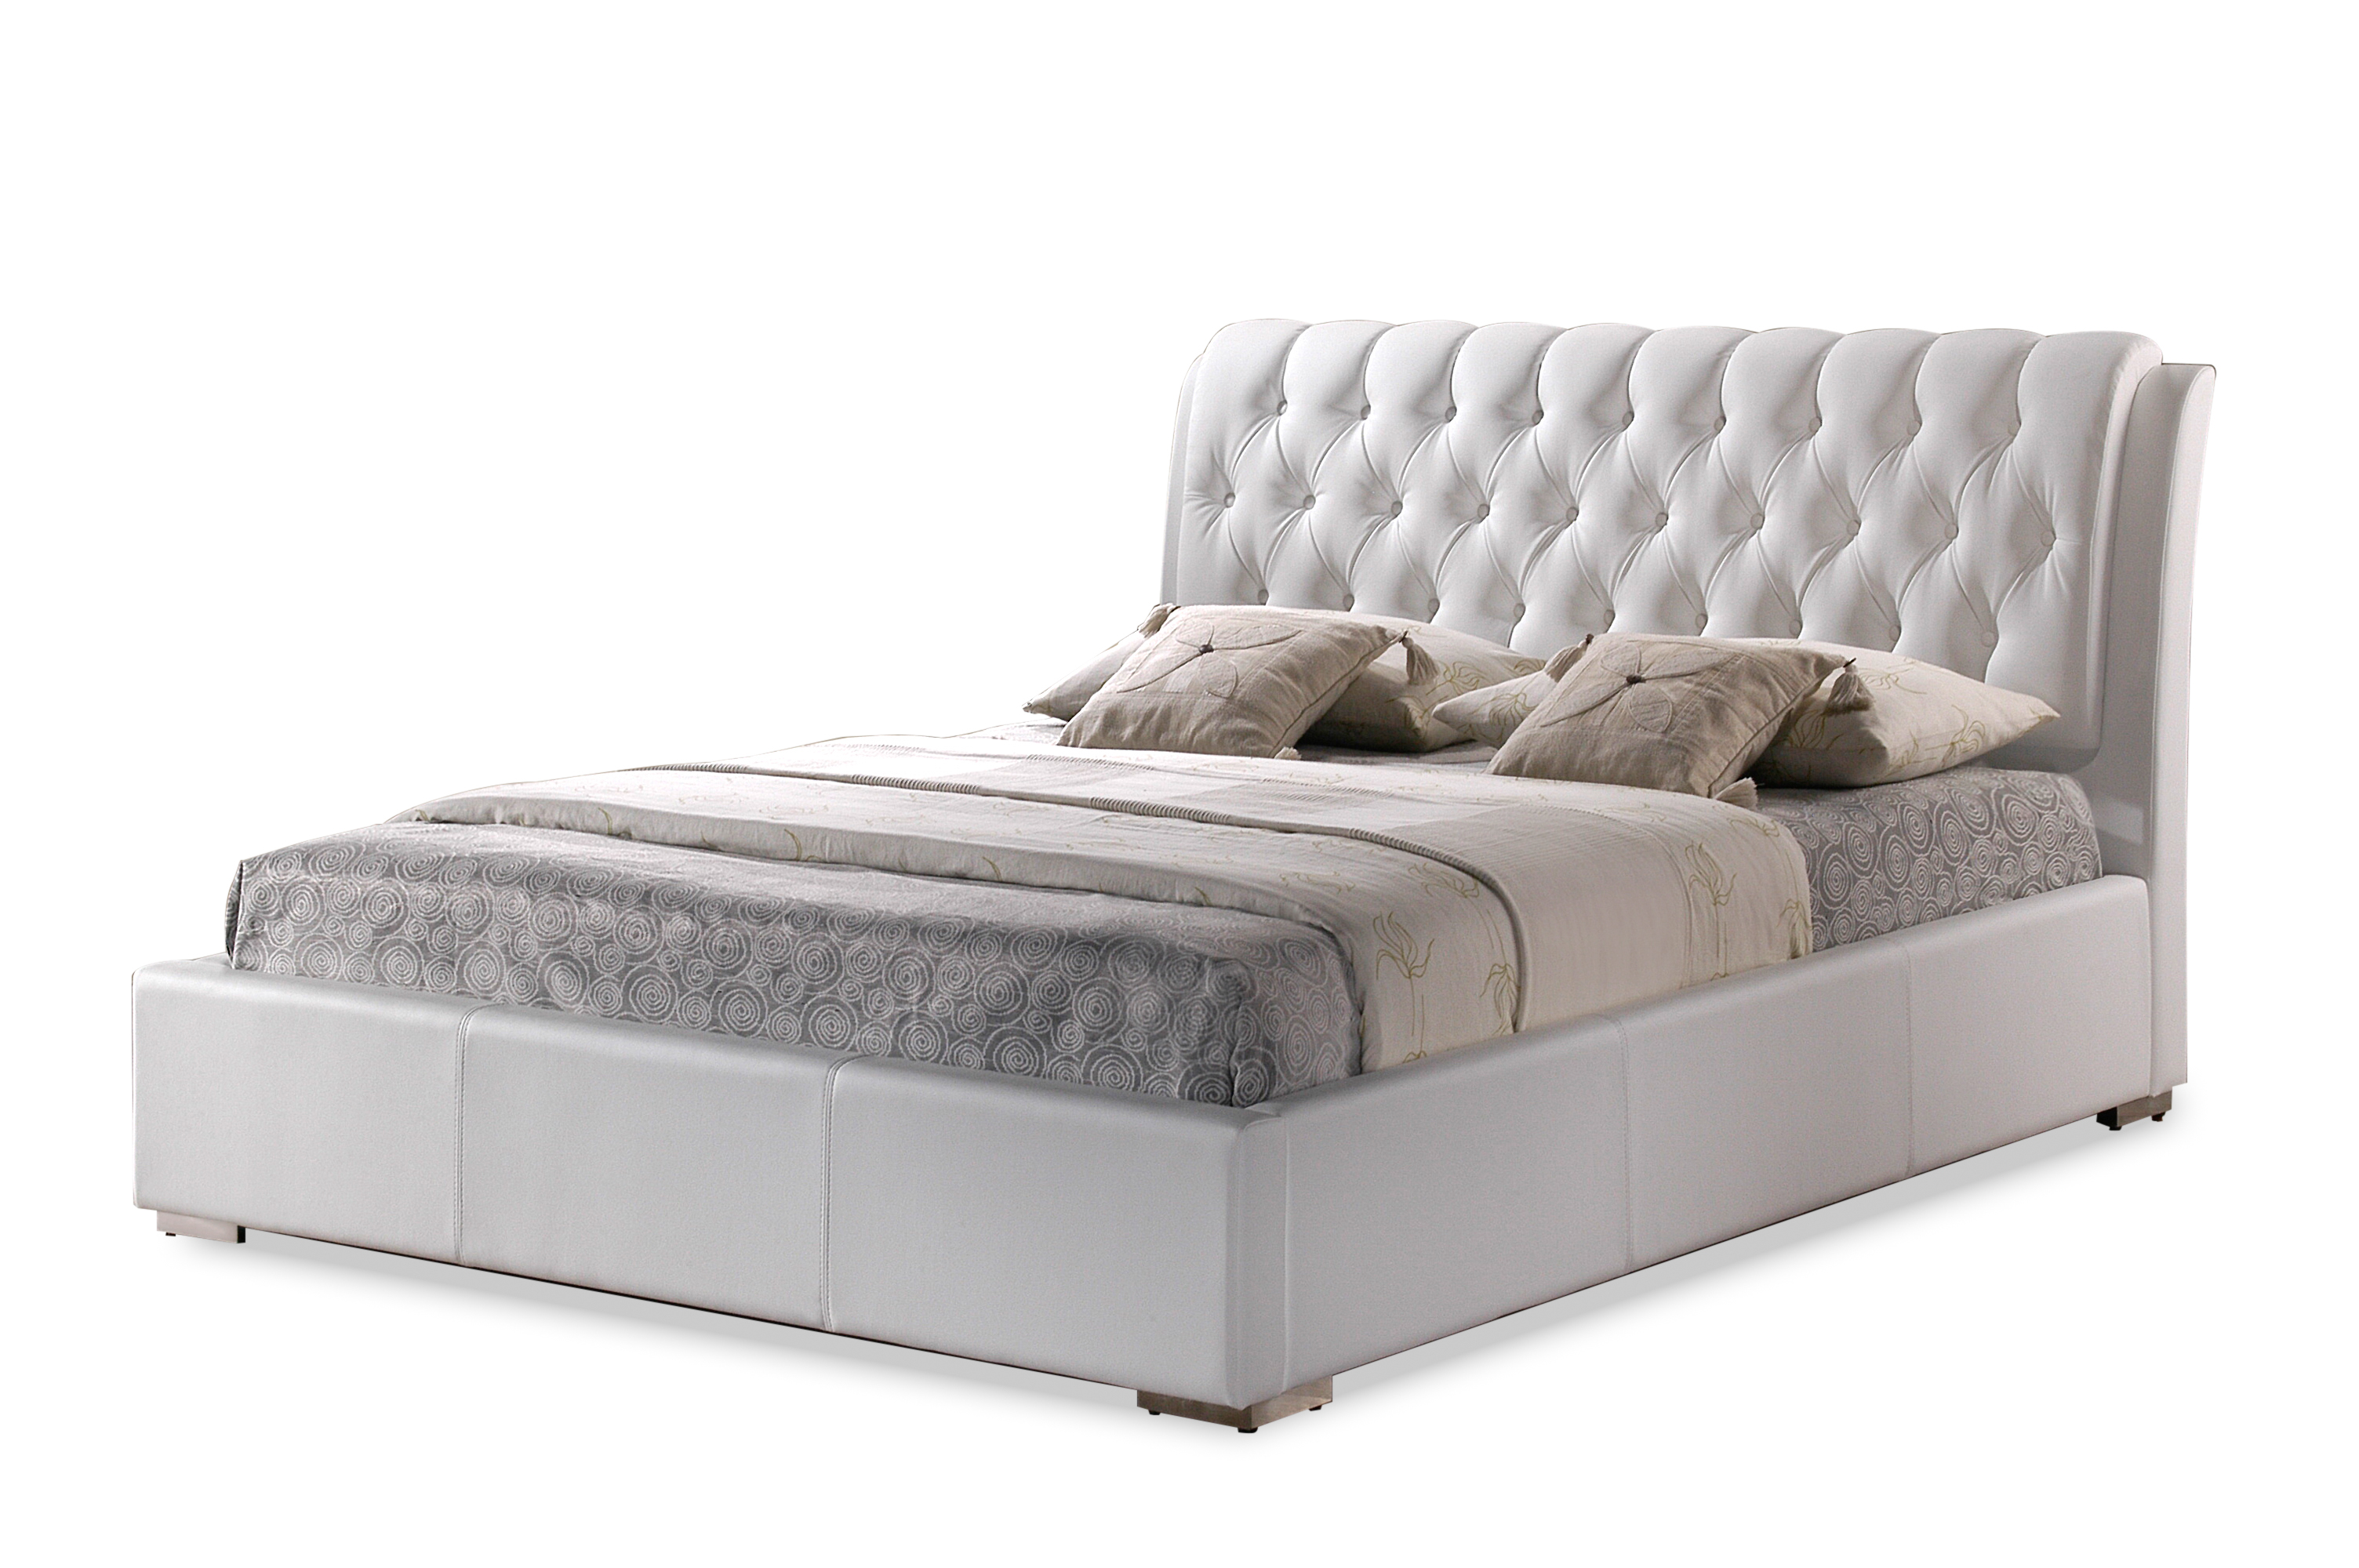 Bianca White Modern Bed with Tufted Headboard - Queen Size ...